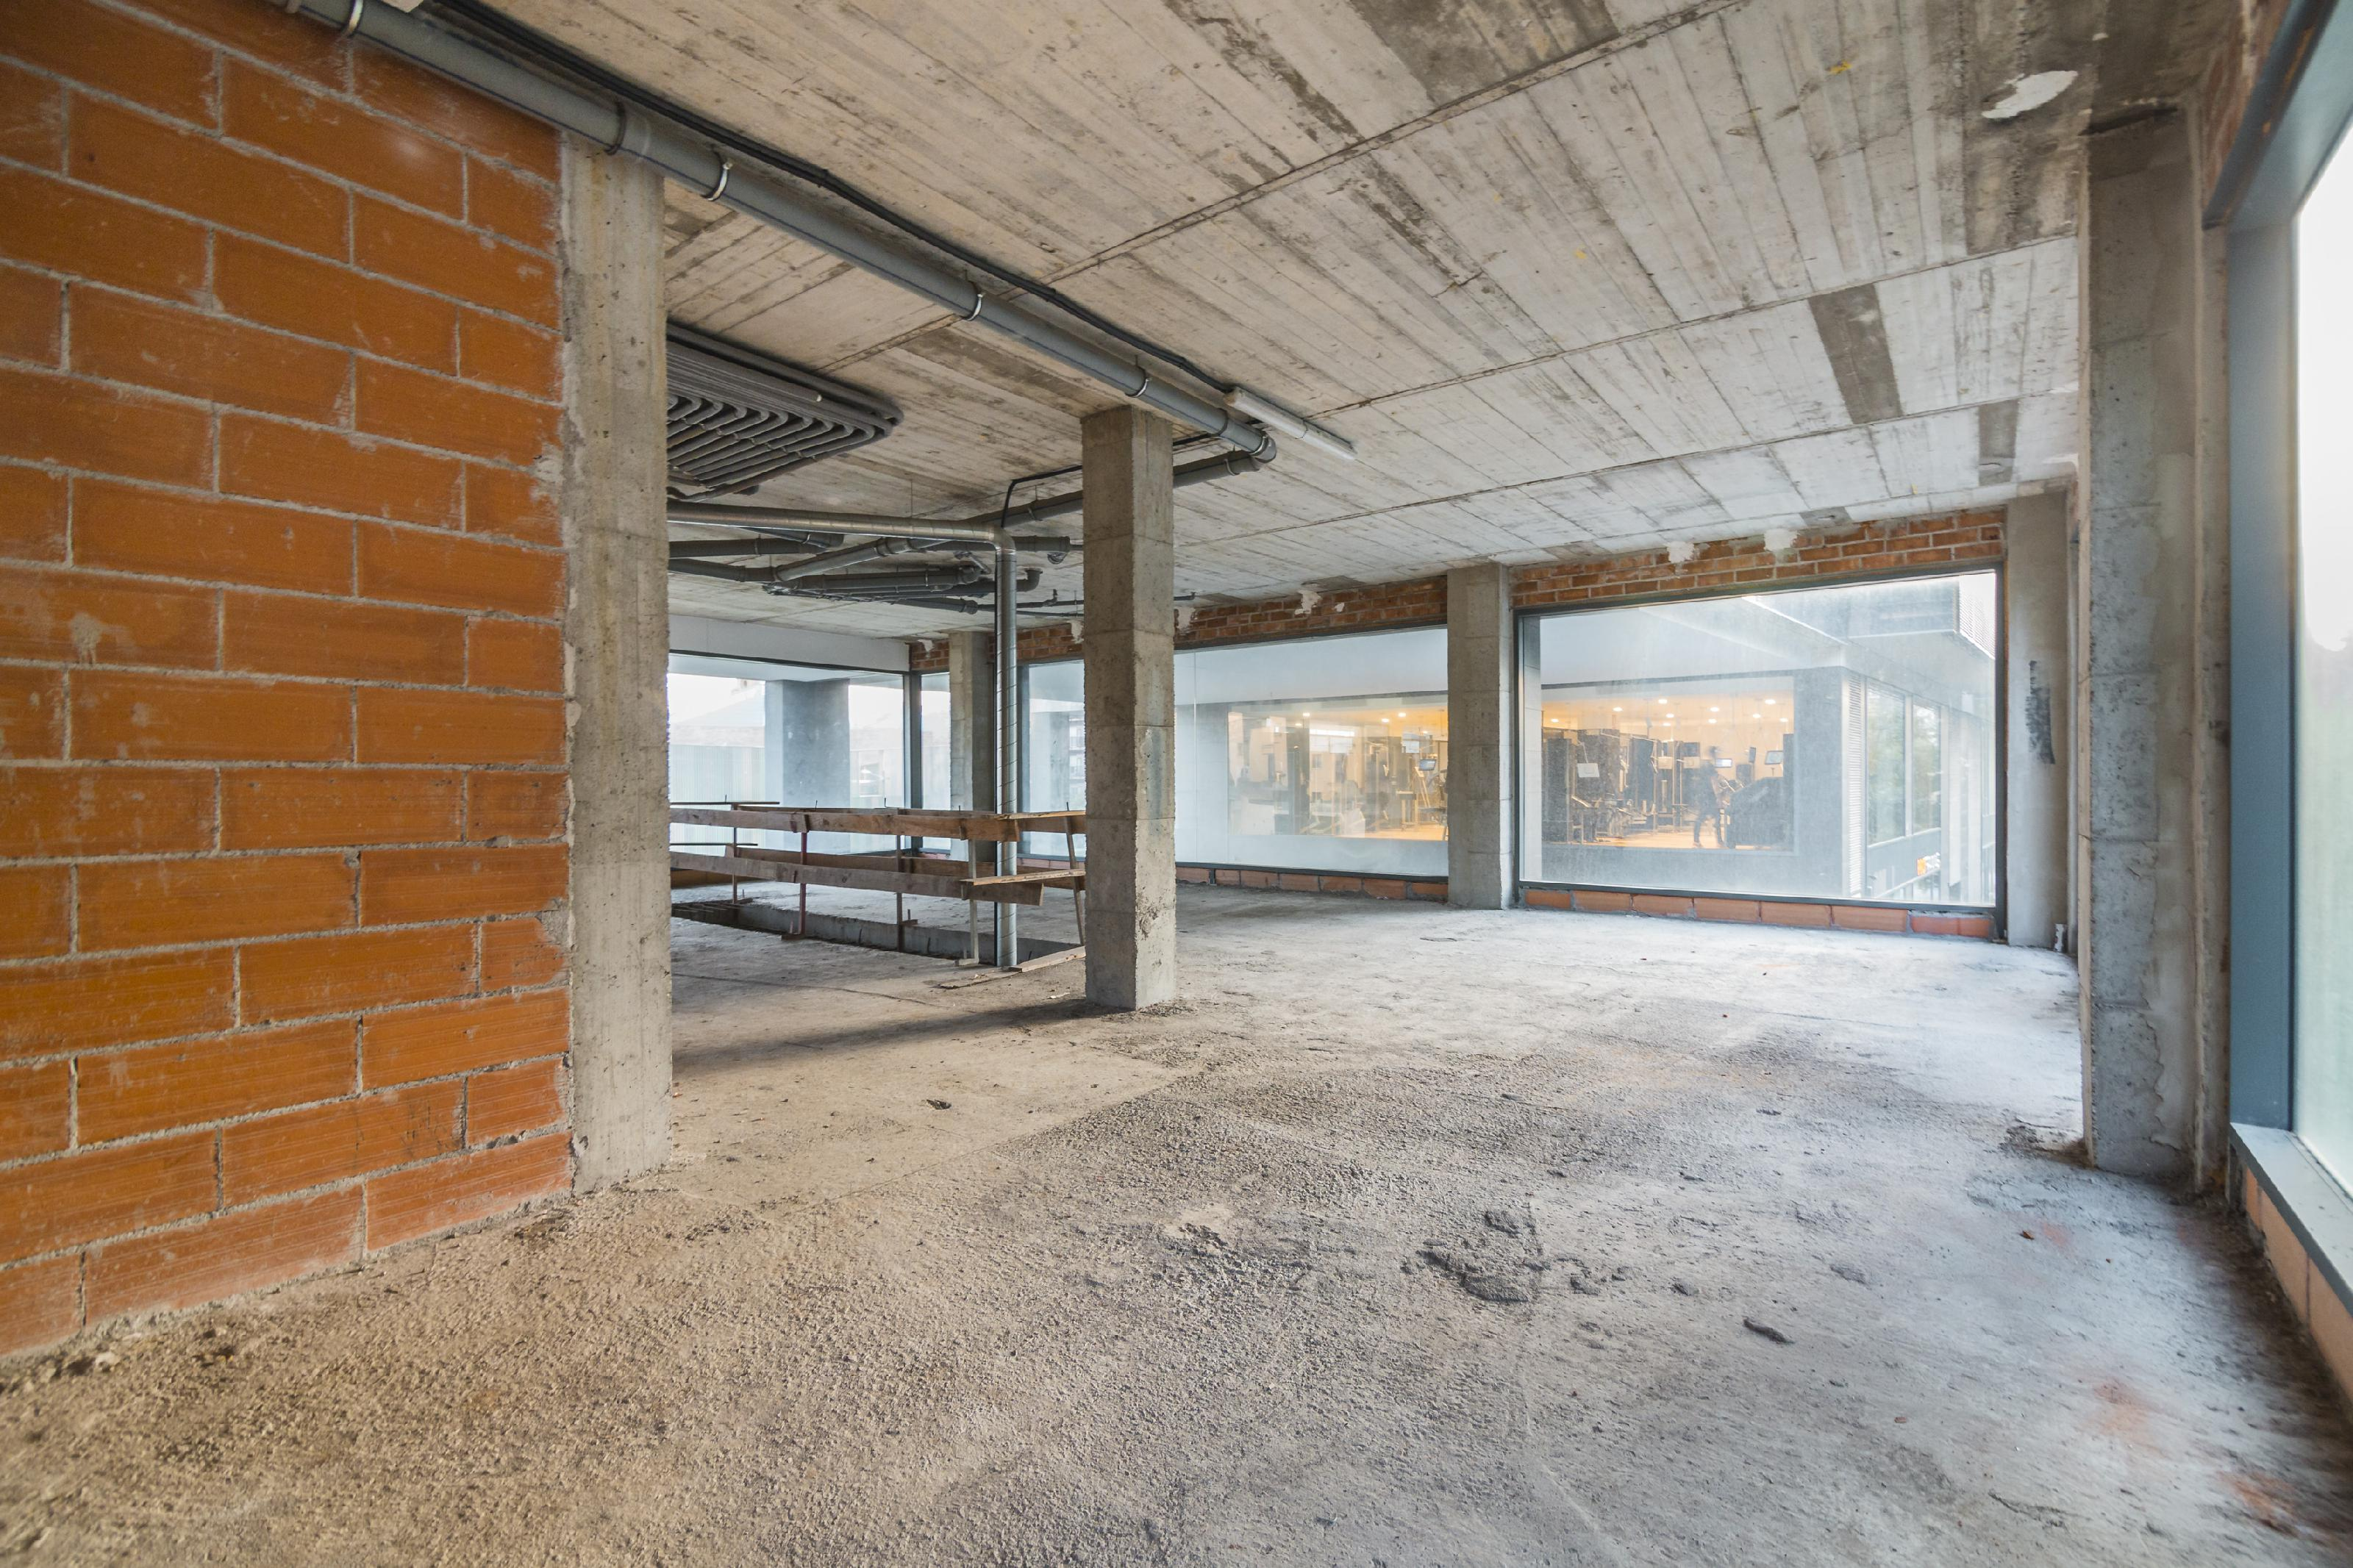 208066 Commercial Premises for sale in Les Corts, Les Corts 16